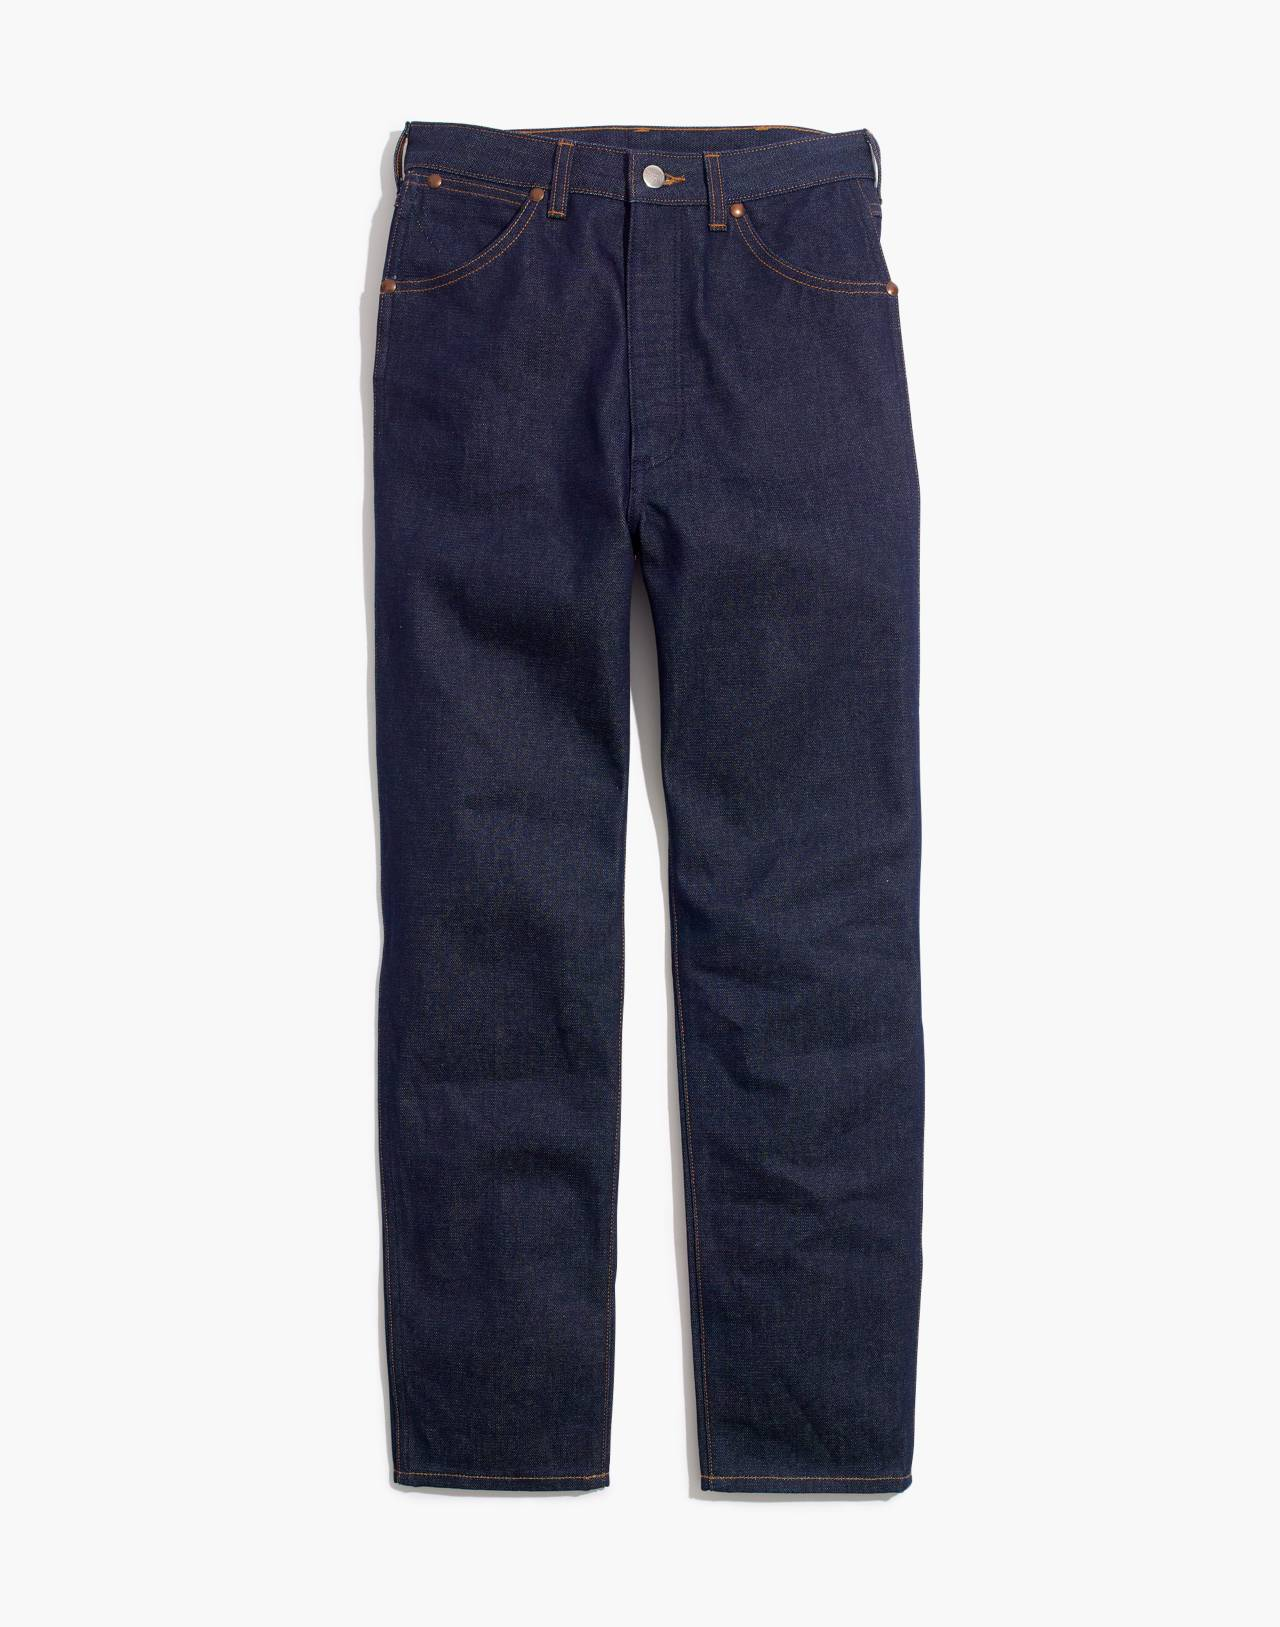 Wrangler® Icons Jeans in new wash image 4